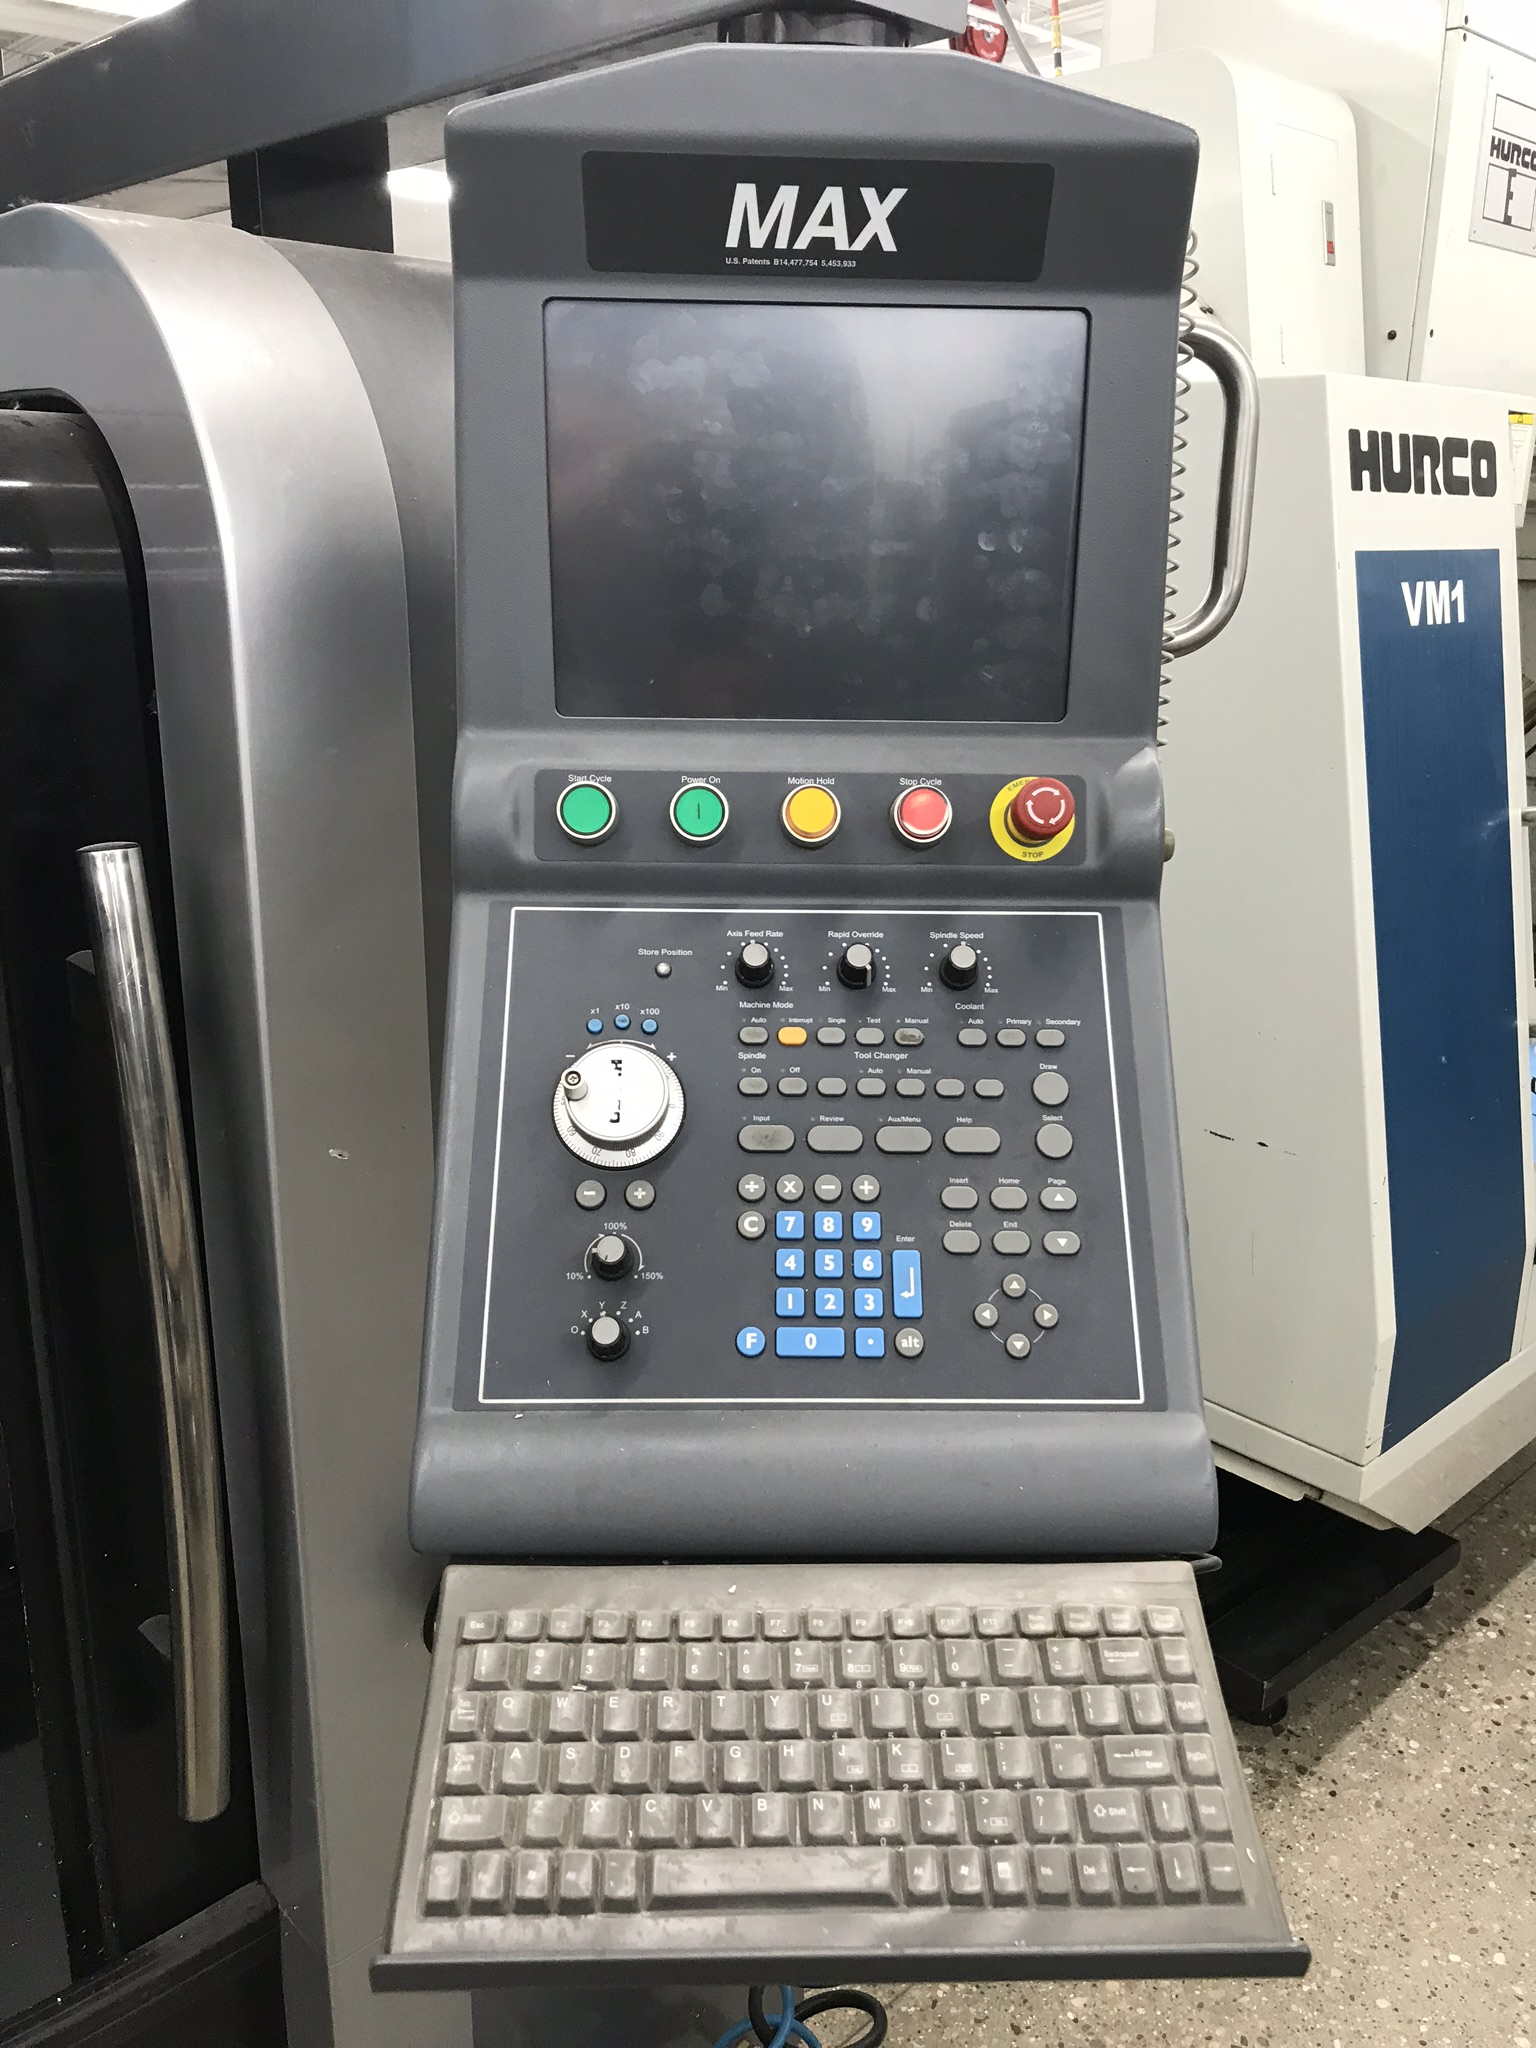 Hurco VM-10i Vertical Machining Center, Loaded with Software and Options (2013) 1,600 Total Hours - Image 4 of 7